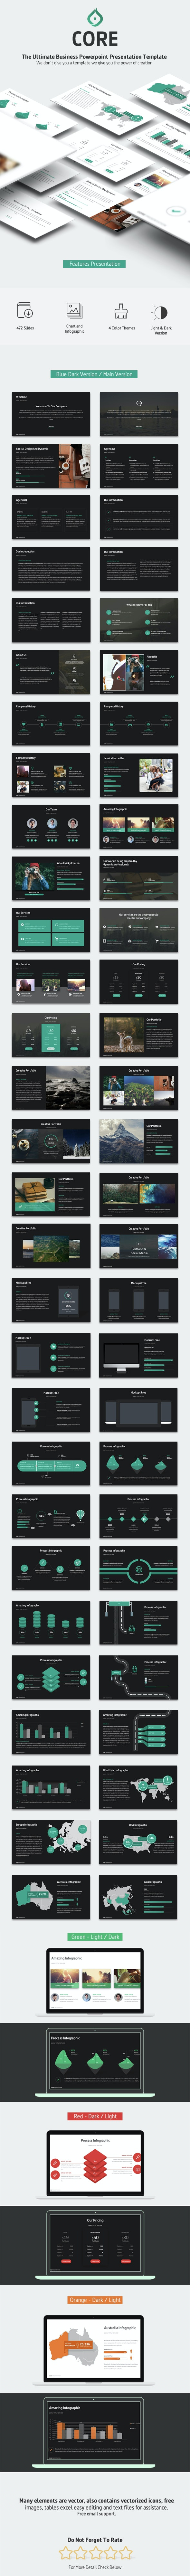 Core - Business Powerpoint Template - Business PowerPoint Templates